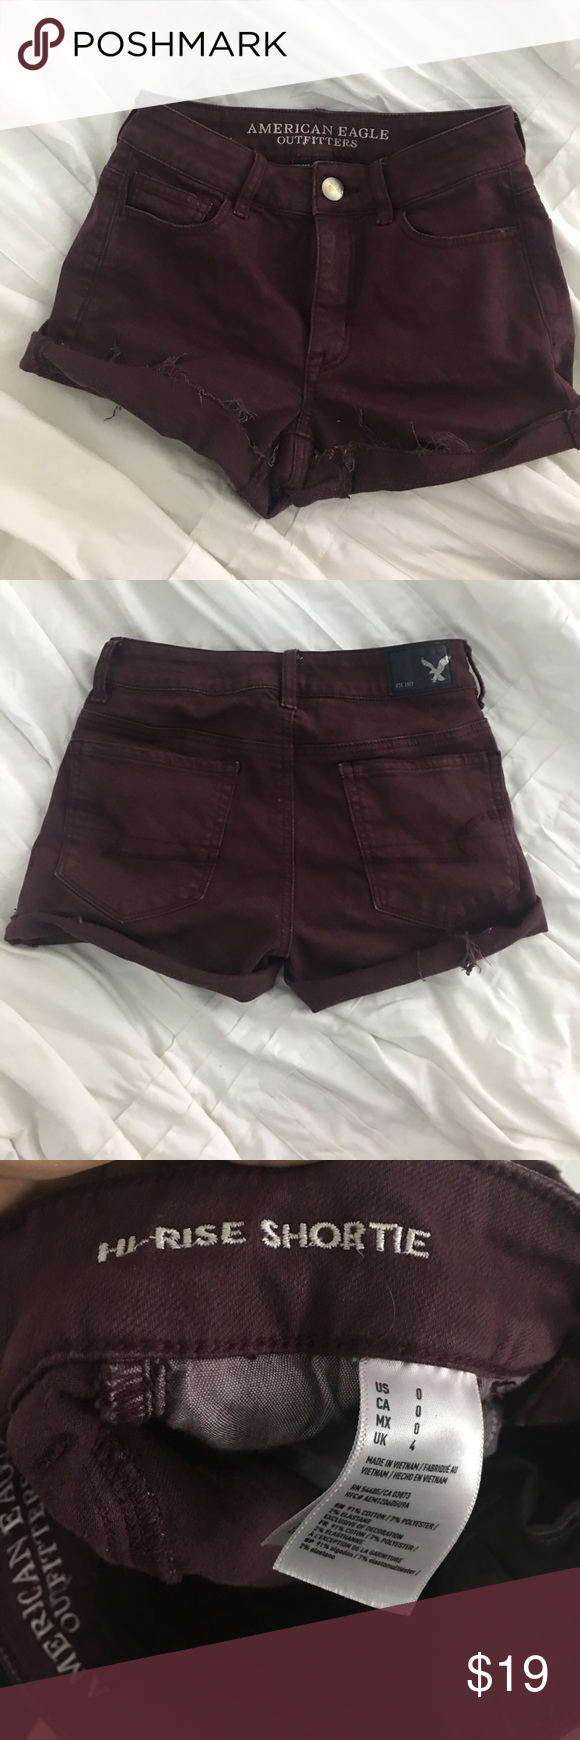 American eagle high waisted super stretch shorts U.S size 0 not too short and can be unrolled wore maybe three times due to sizing American Eagle Outfitters Shorts Jean Shorts